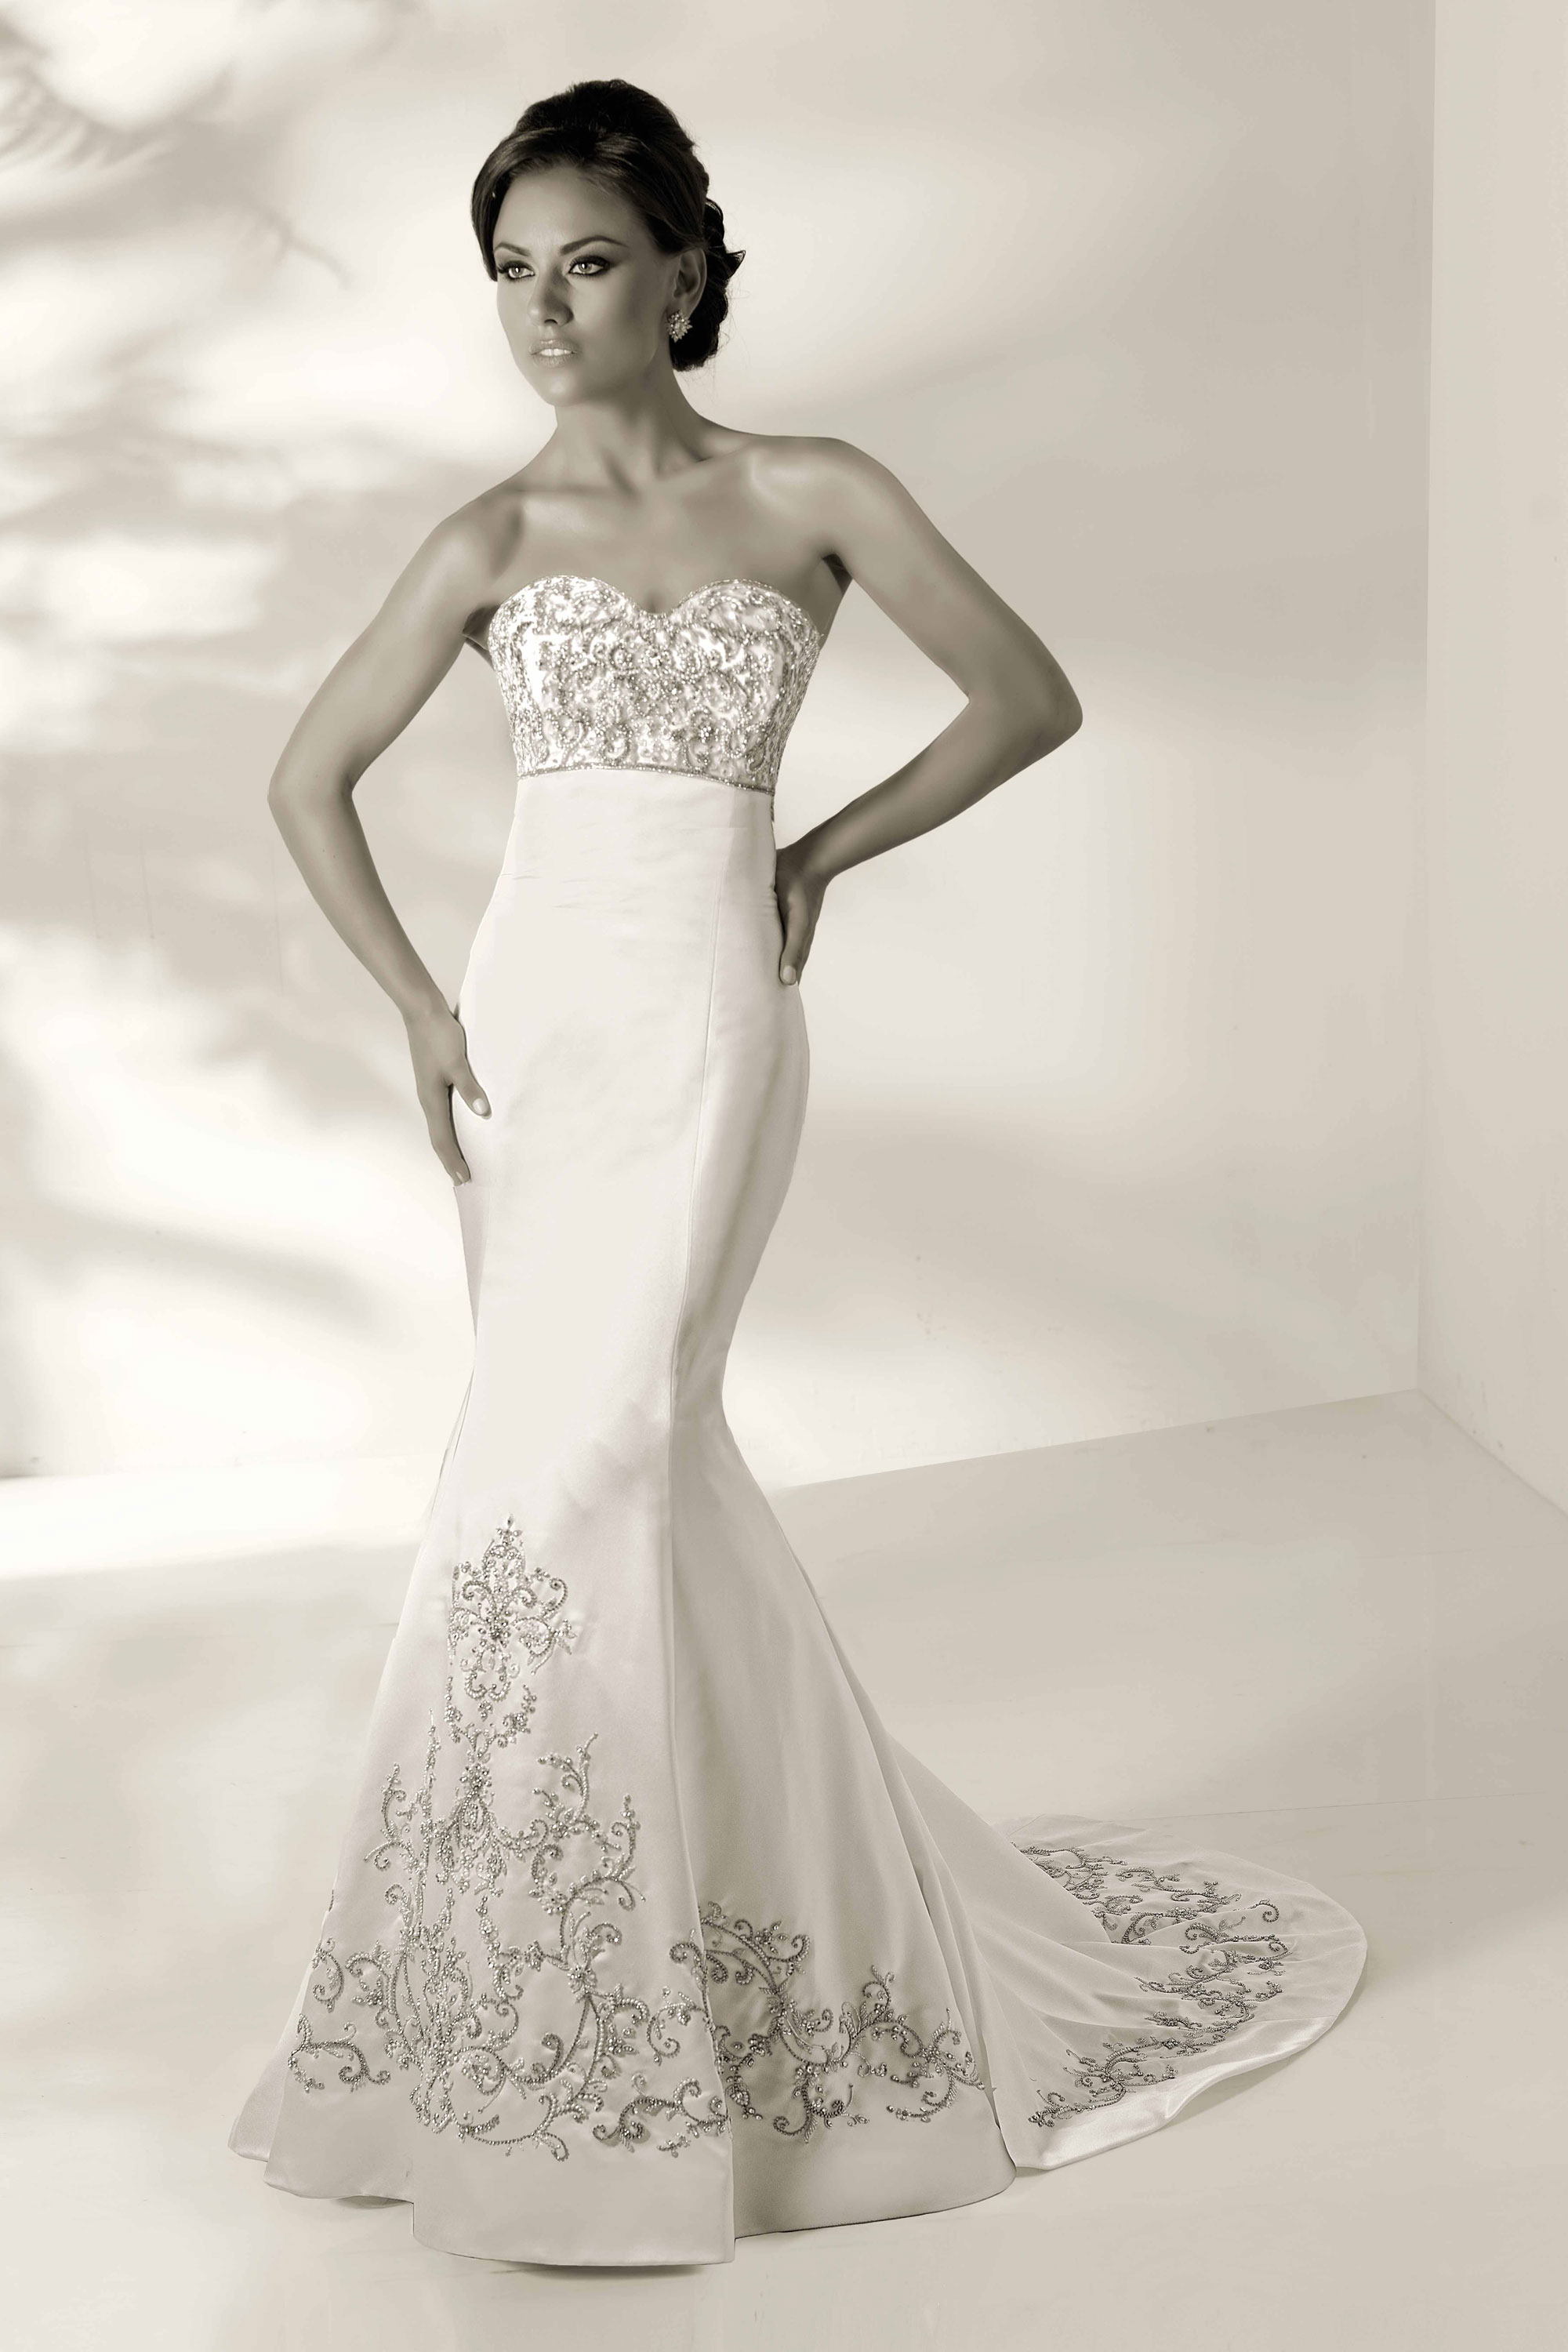 cristiano-lucci-wedding-dresses-8-01052014